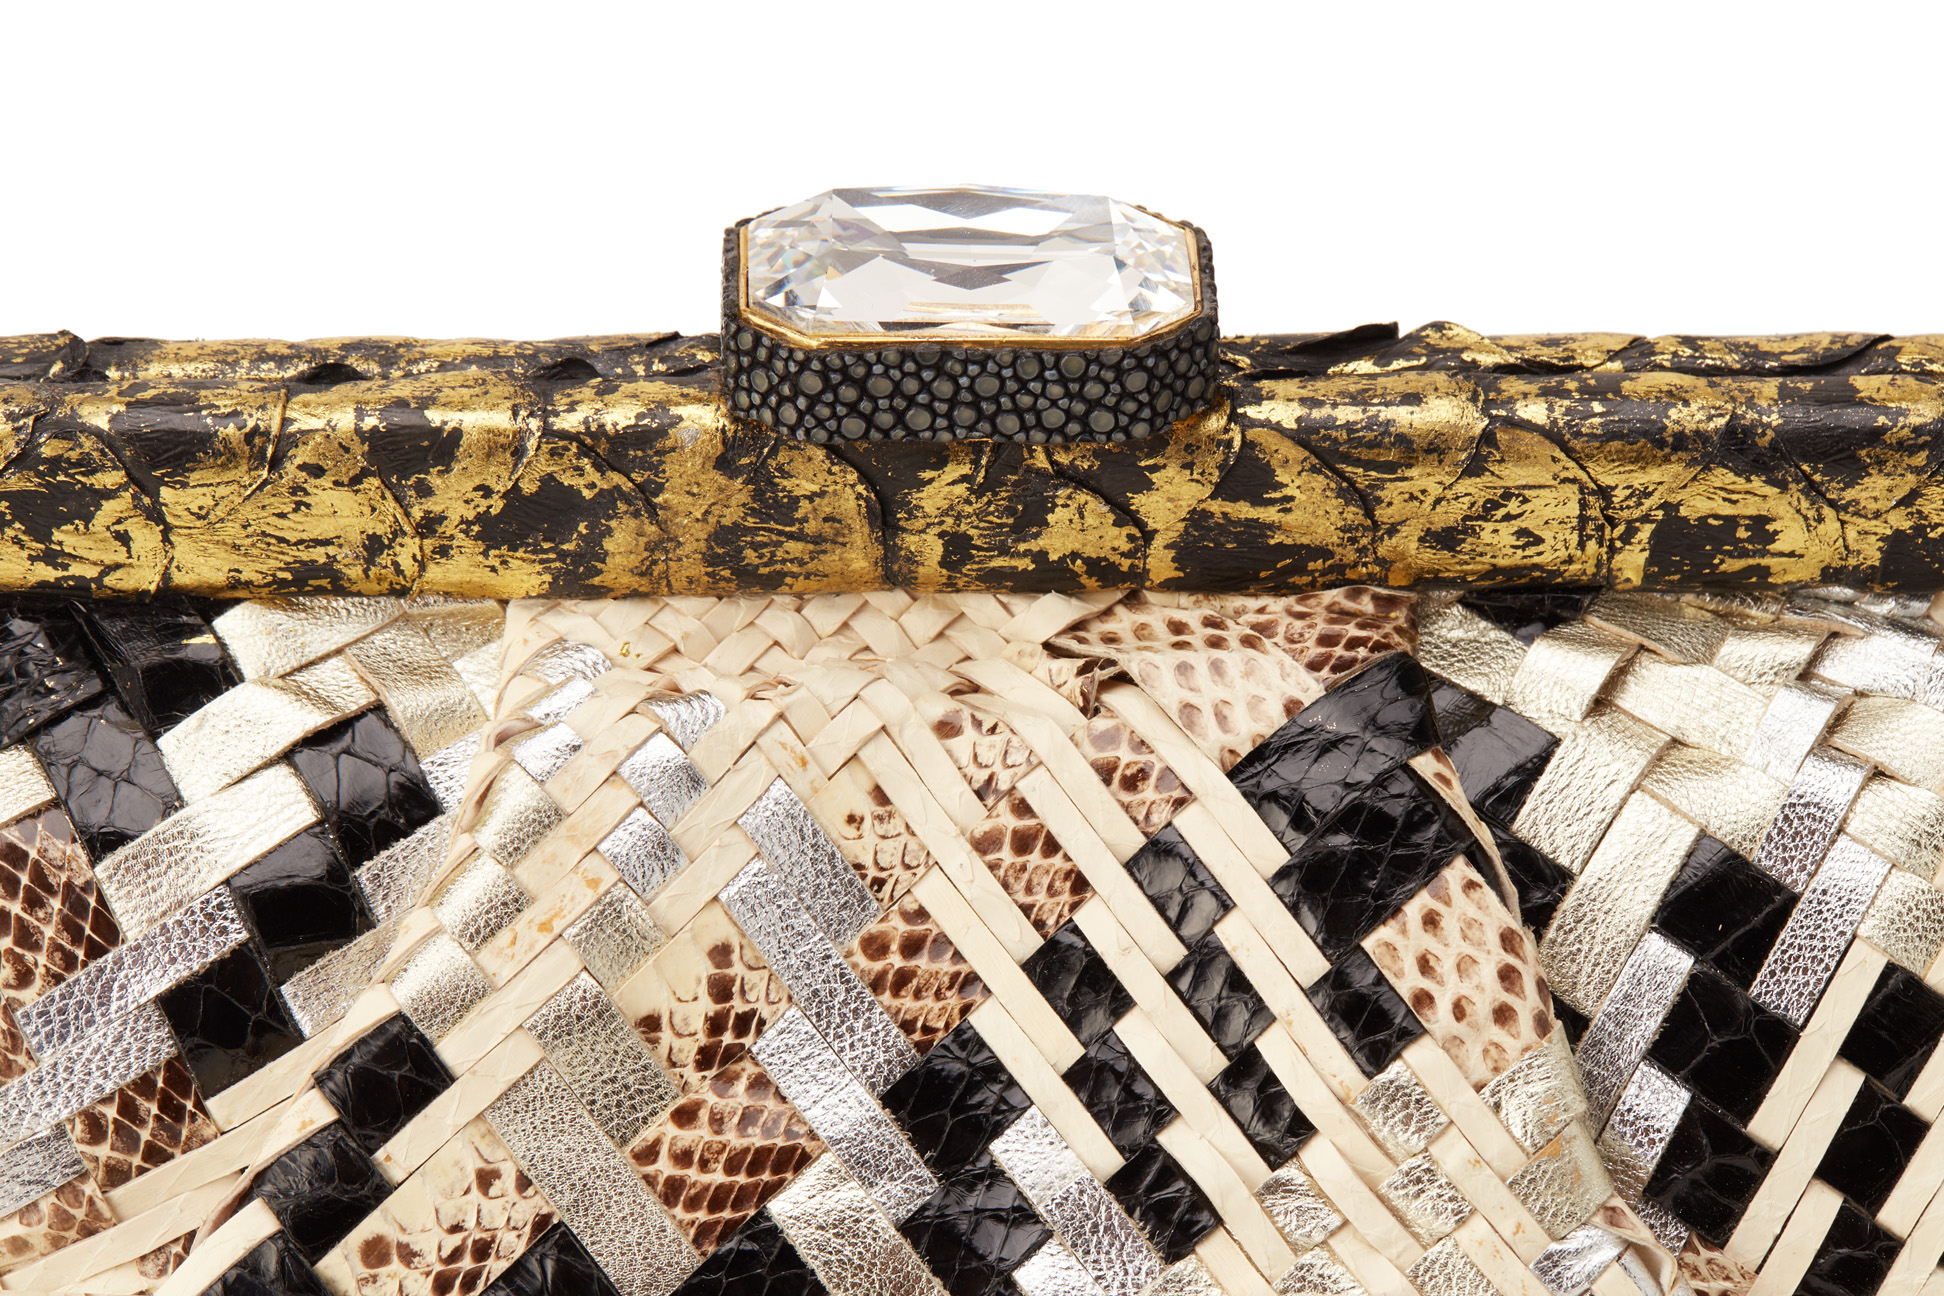 AN ANA MULTICOLOURED SNAKESKIN WEAVED CLUTCH - Image 2 of 5